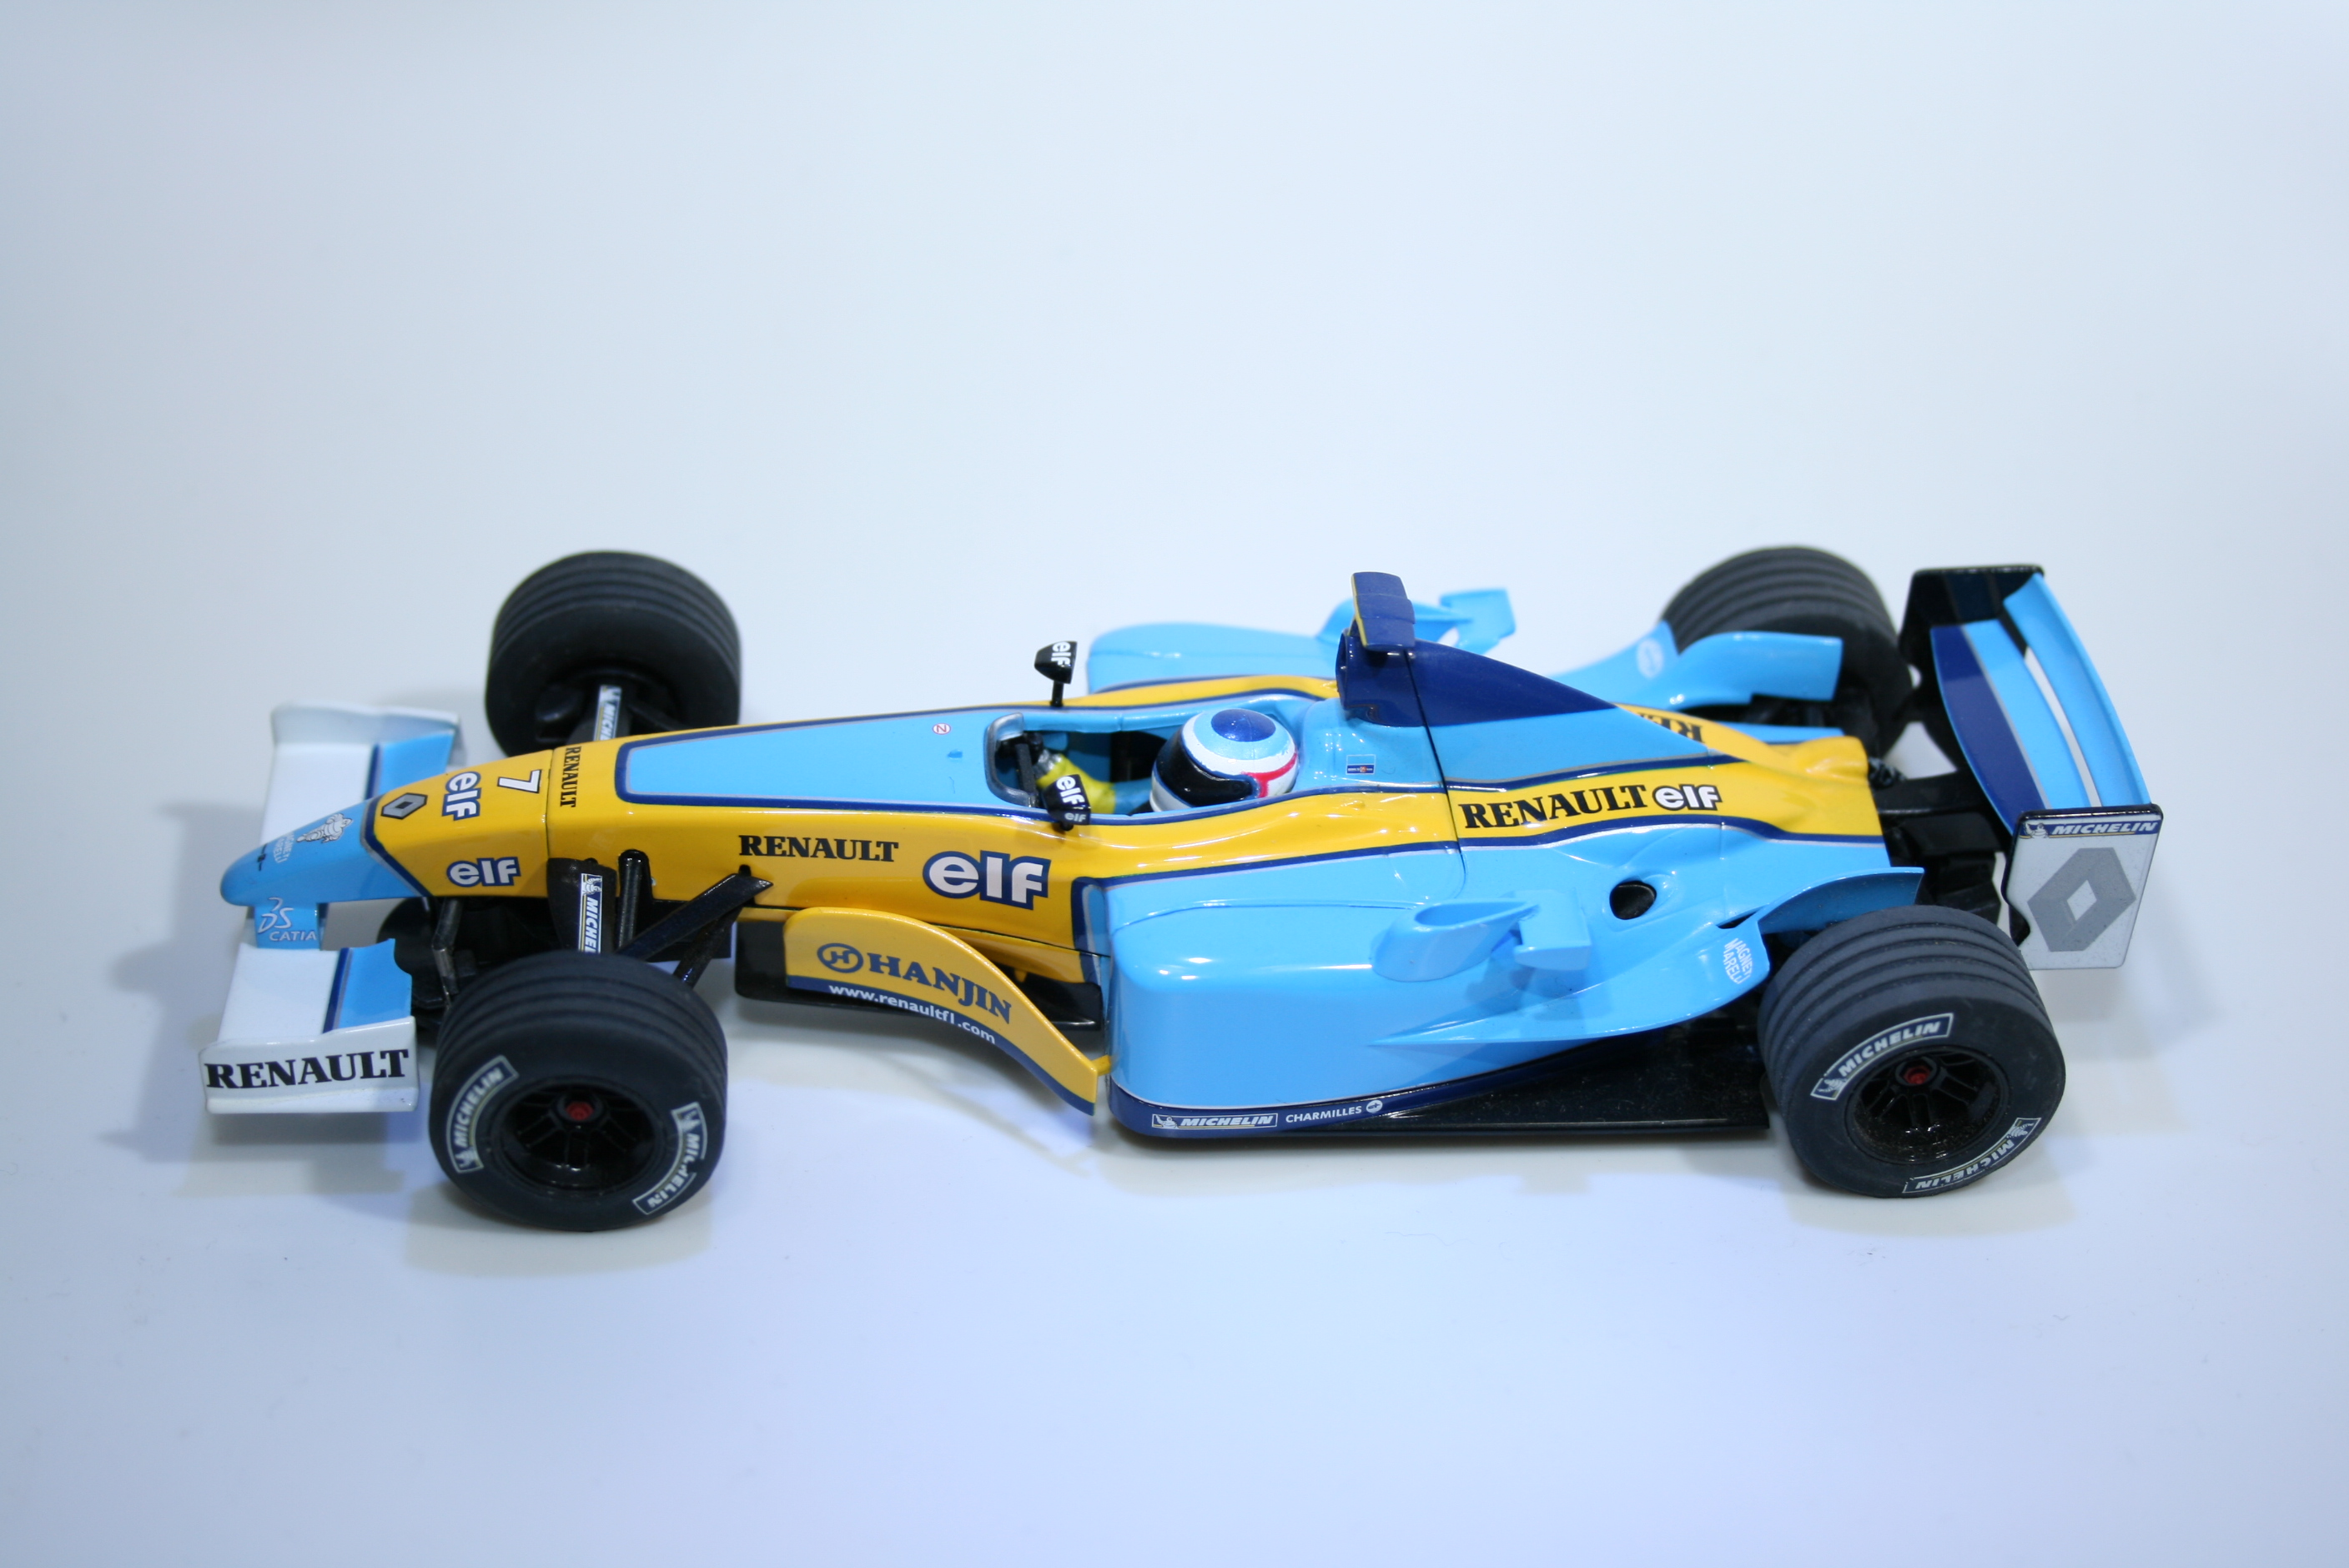 171 Renault R23 2003 J Trulli Scalextric C2397A 2003 Boxed